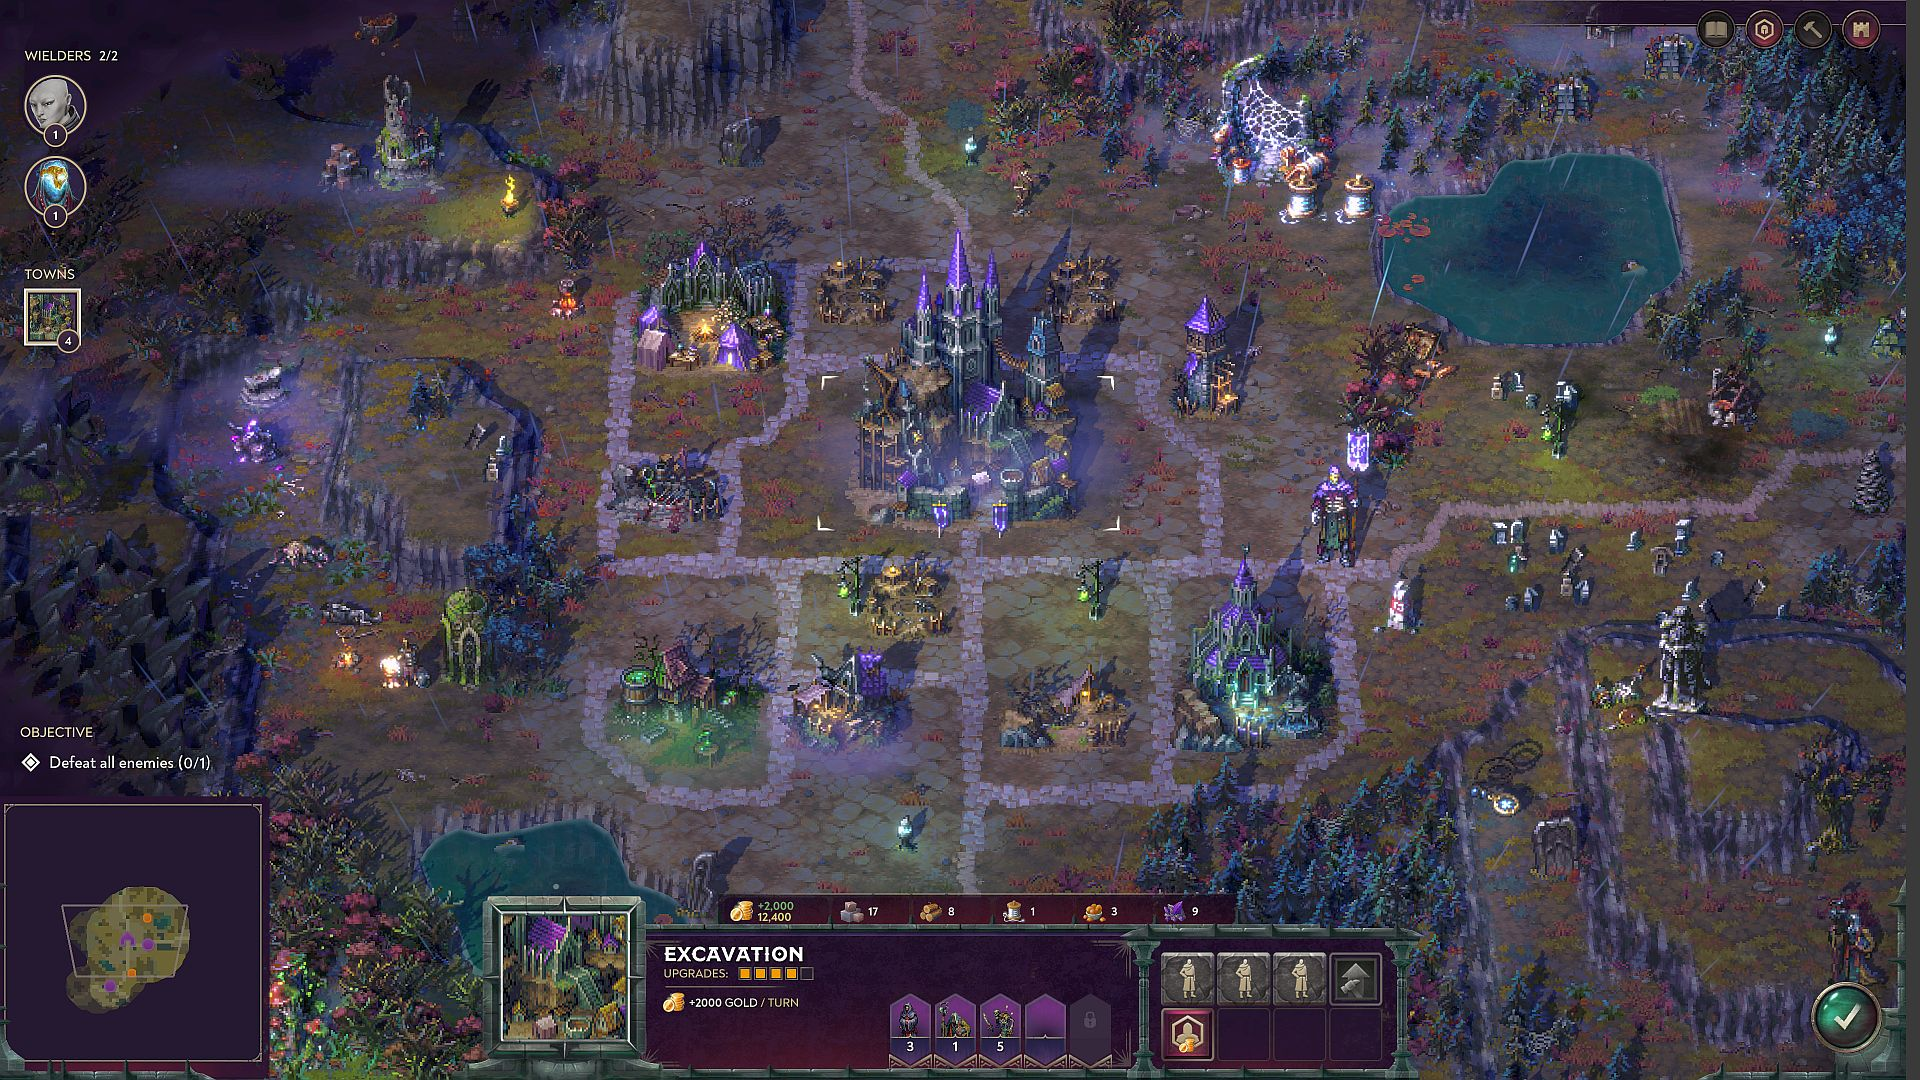 Pixel art fantasy-strategy game Songs of Conquest releases early 2022